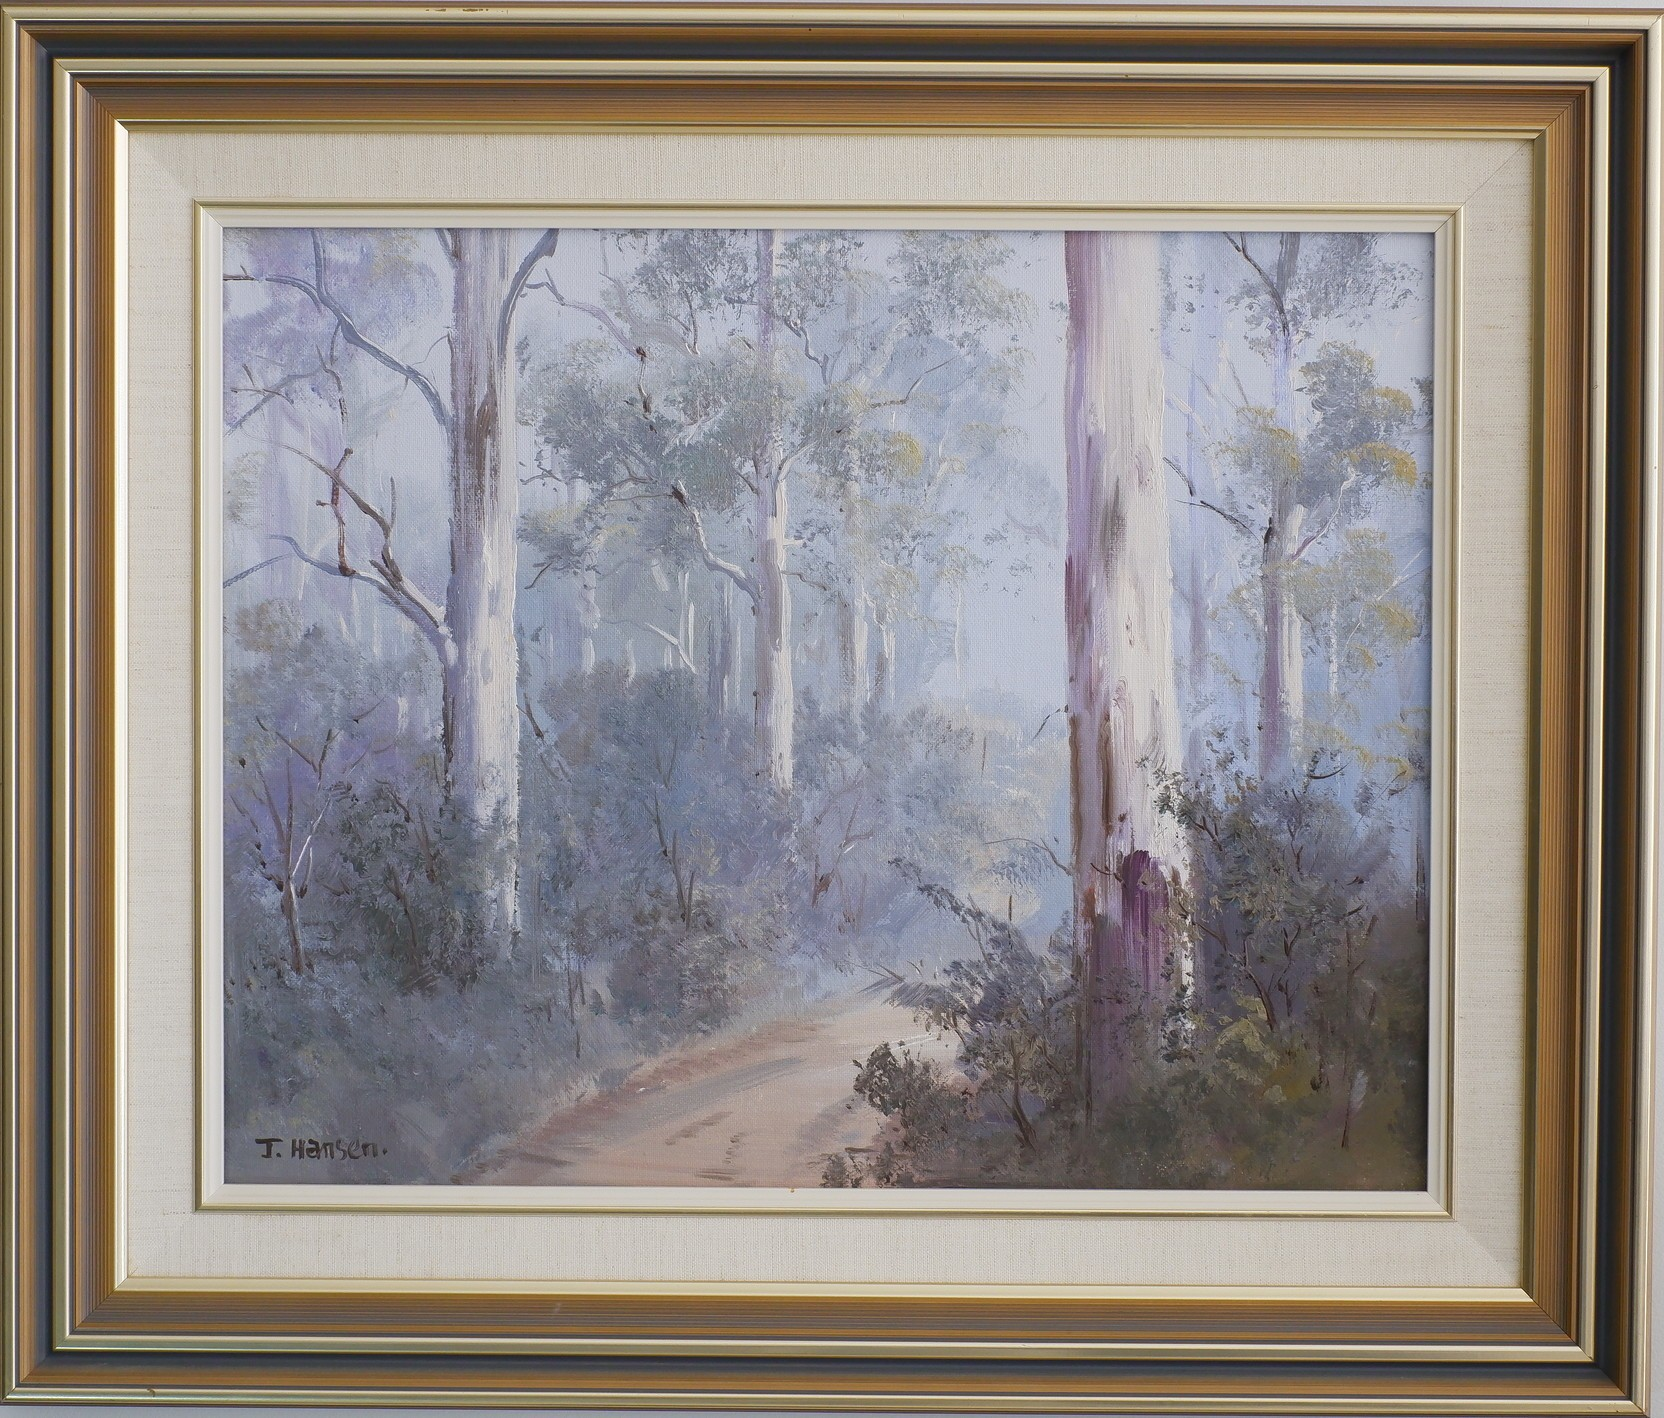 'John Hansen Forrest Mist Oil on Board'